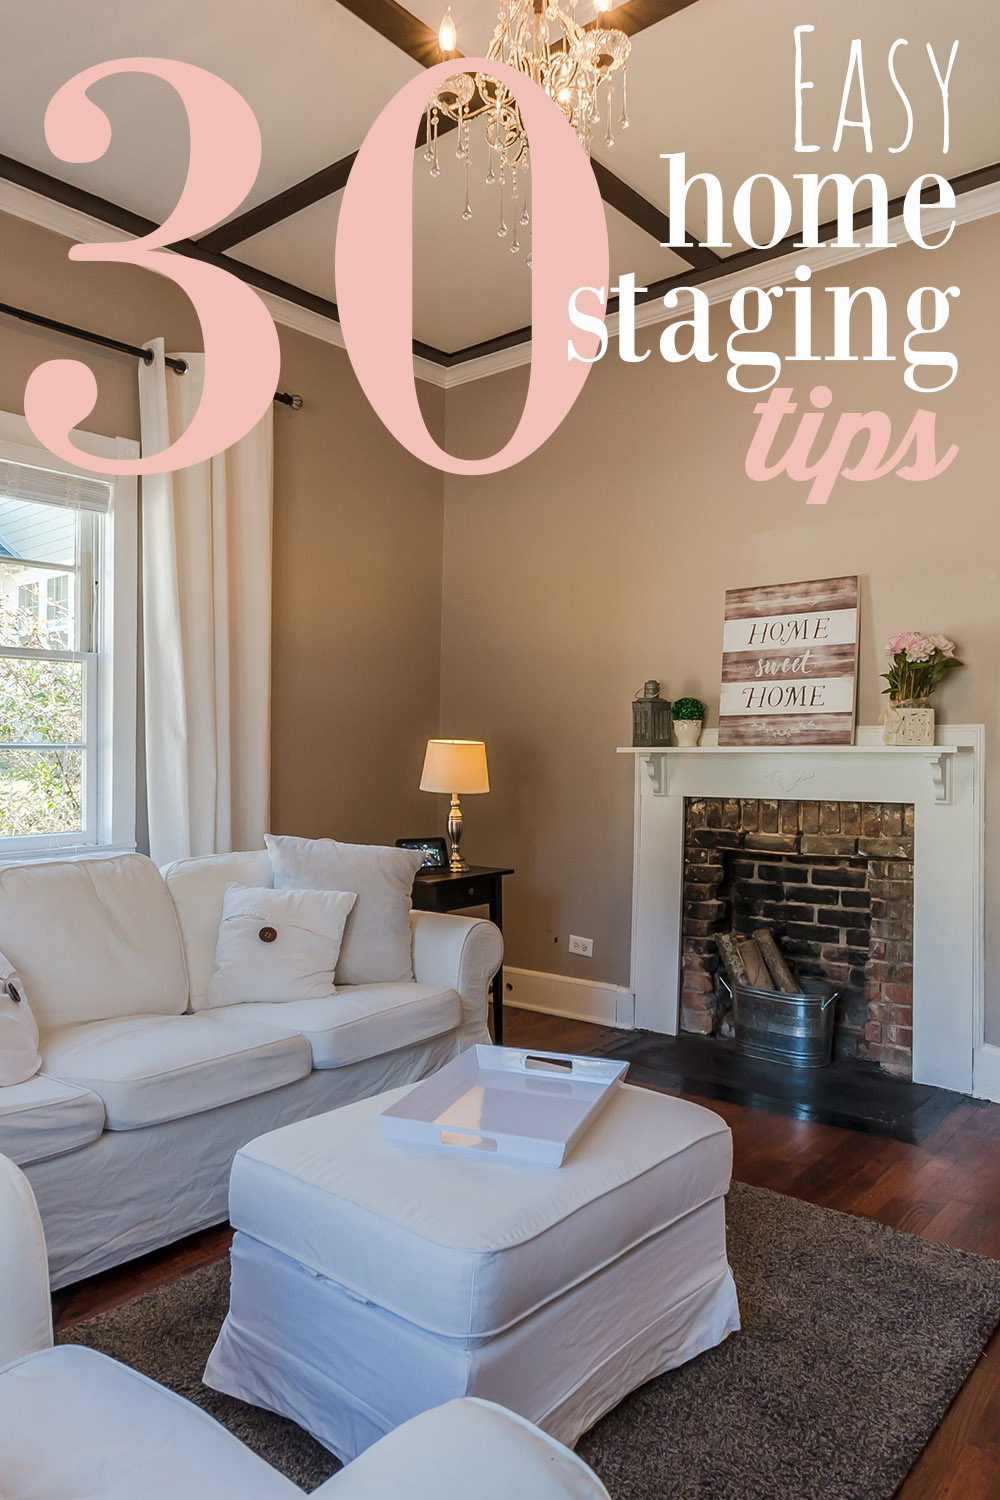 30 easy home staging tips to sell your house fast for Stage your home to sell ideas